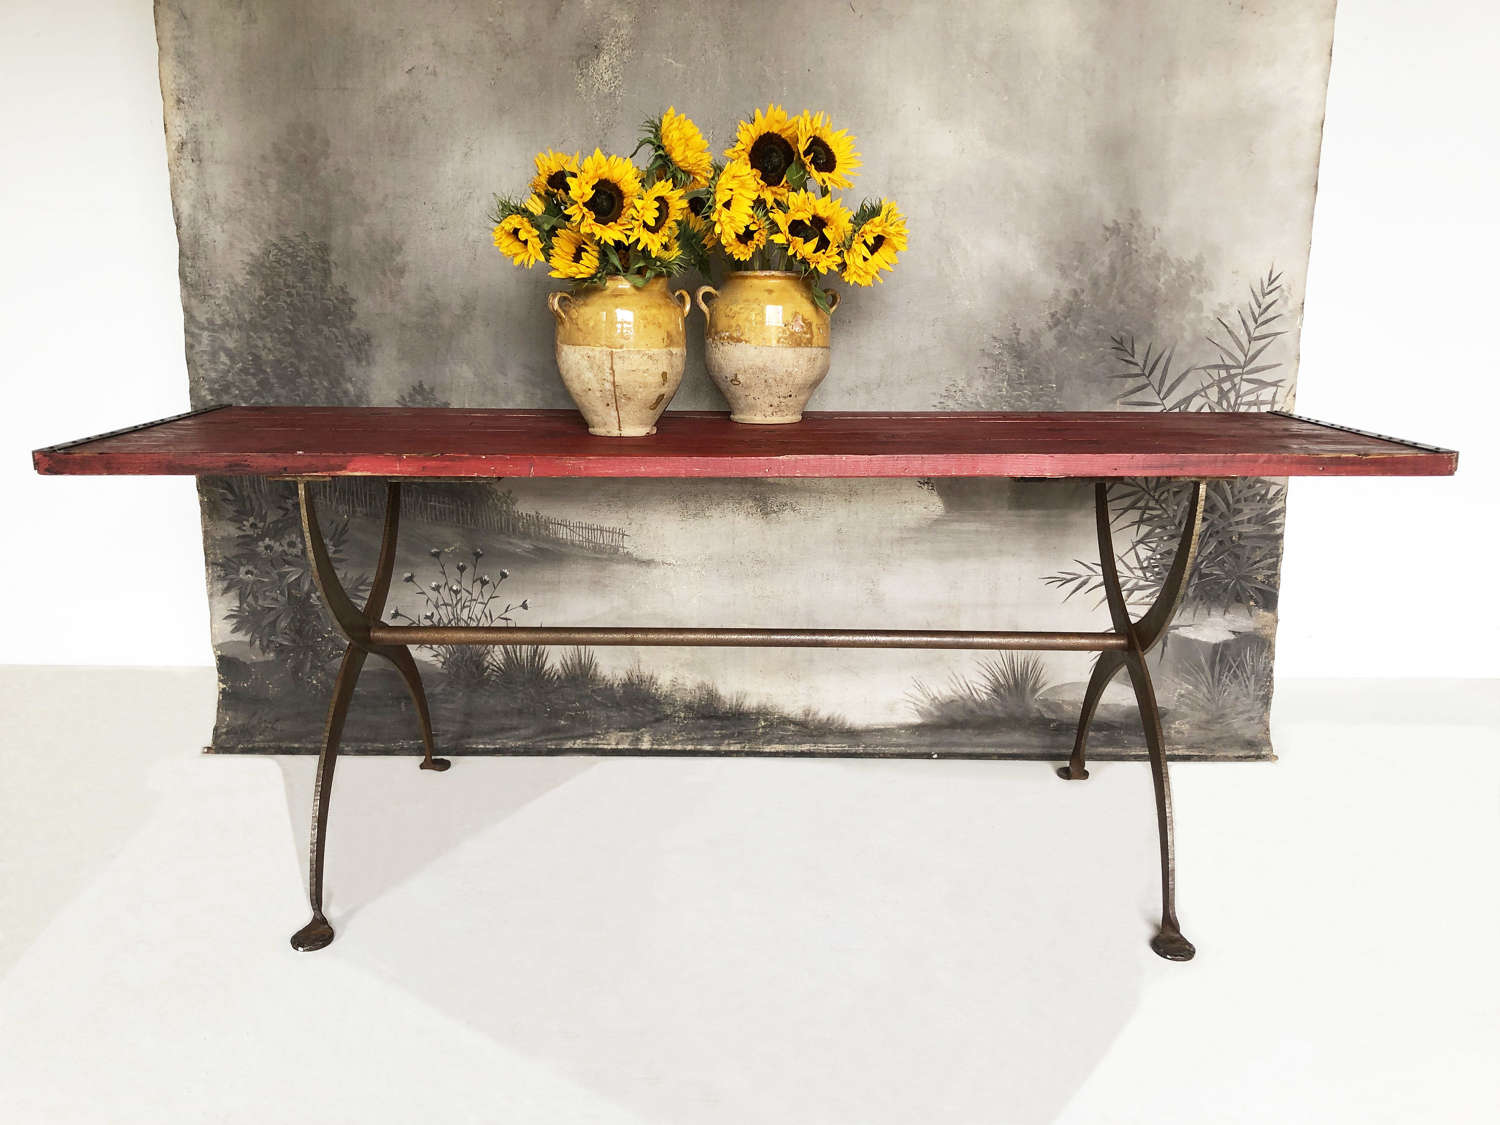 Early 20th c Welsh Industial Work Table with iron base - circa 1920